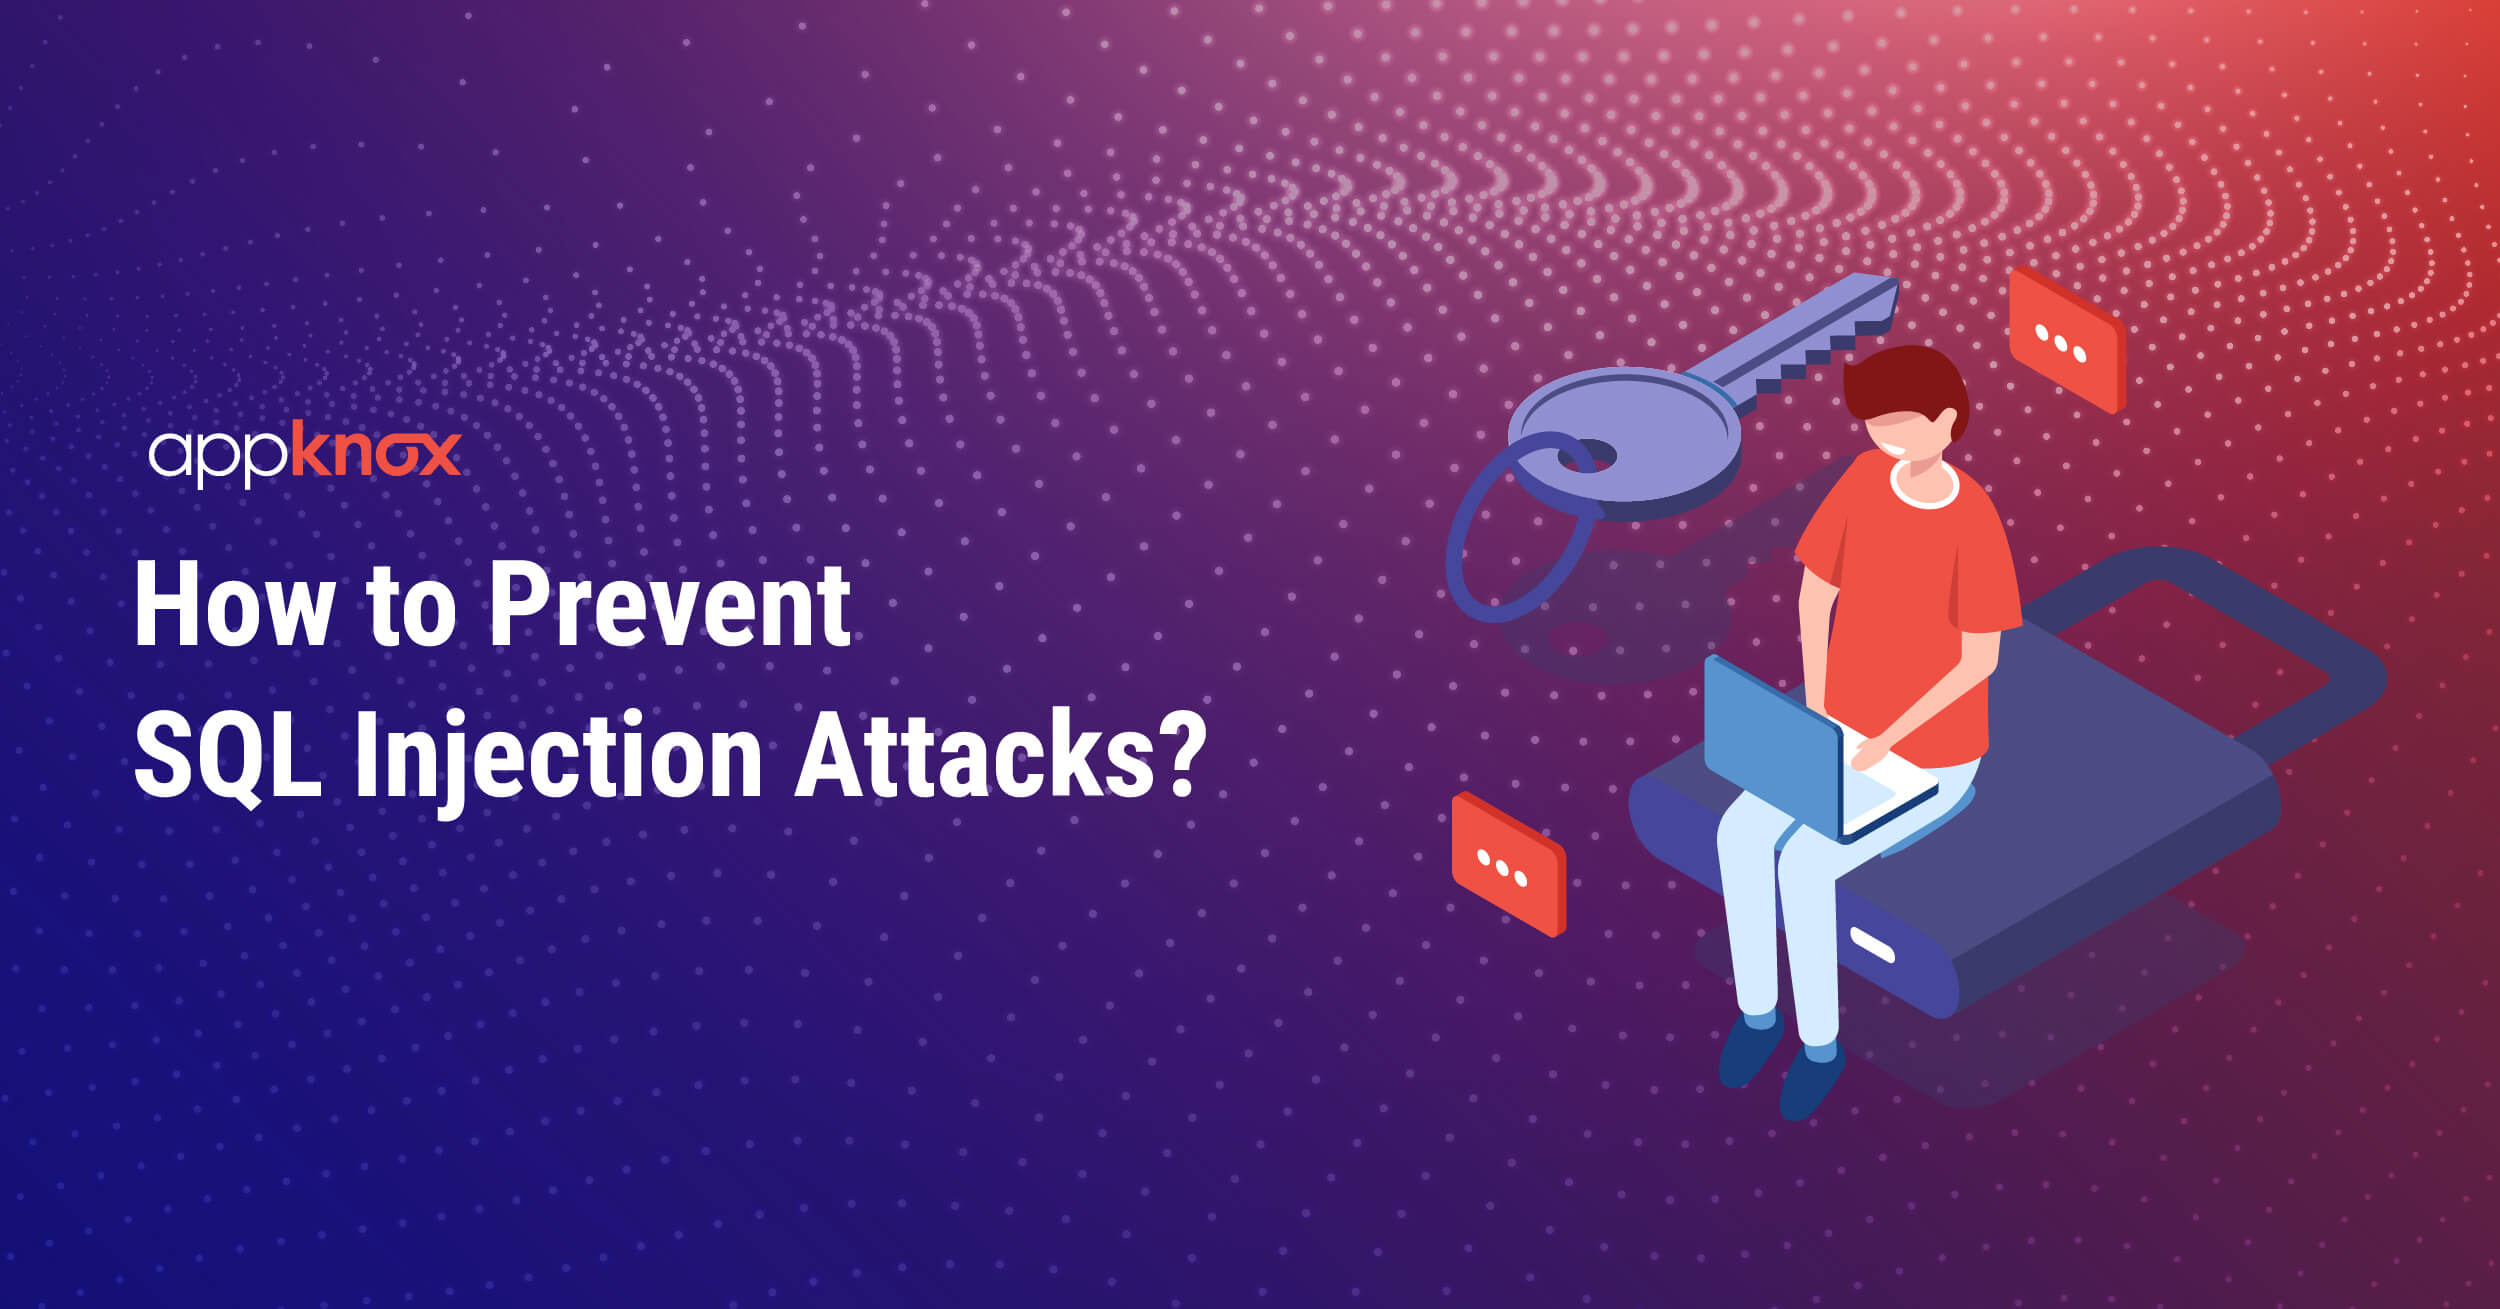 How to Prevent SQL Injection Attacks